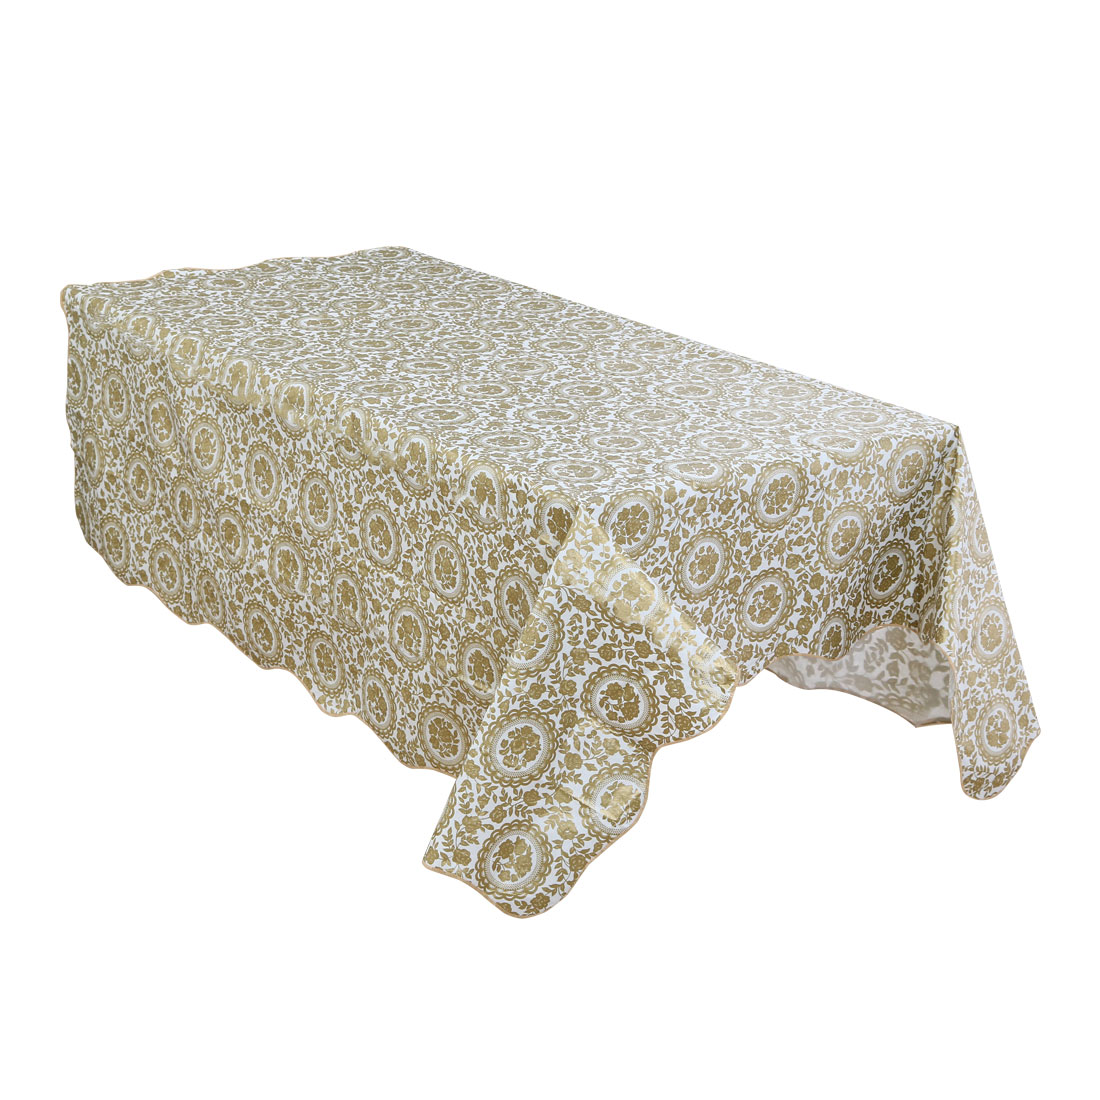 Home Picnic Turntable Flower Pattern Water Resistant Oil-proof Tablecloth Table Cloth Cover Gold Tone 71 x 54 Inch